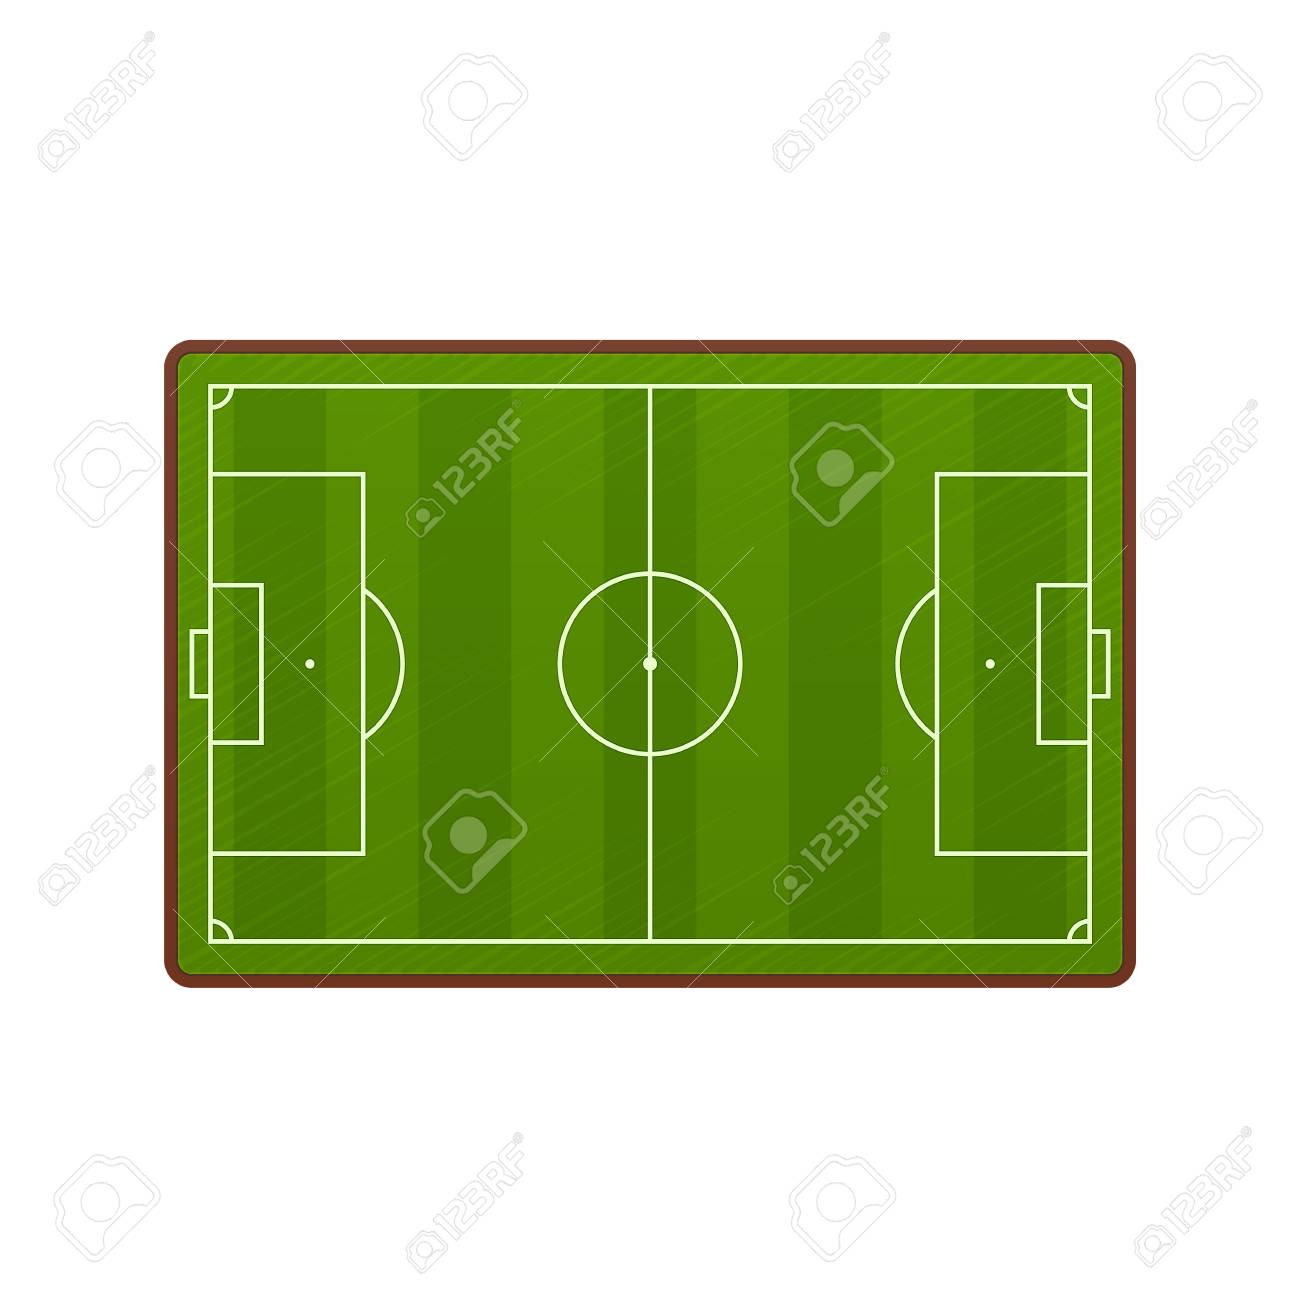 Realistic Football Field Template, Playground With Green Grass ...